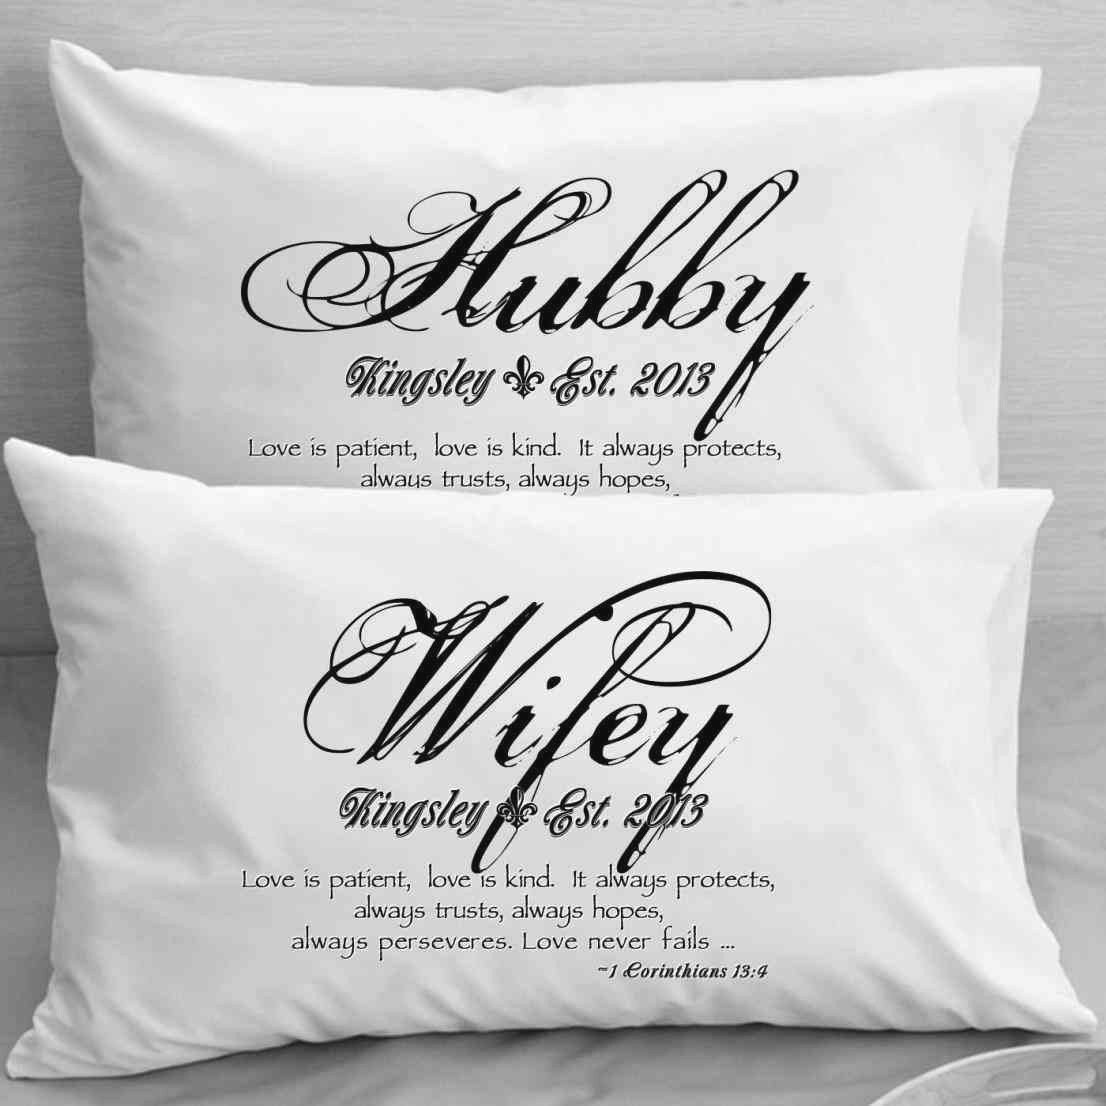 10 Stylish Wedding Gift Ideas For Second Marriage 2nd marriage wedding gifts images wedding decoration ideas 2020